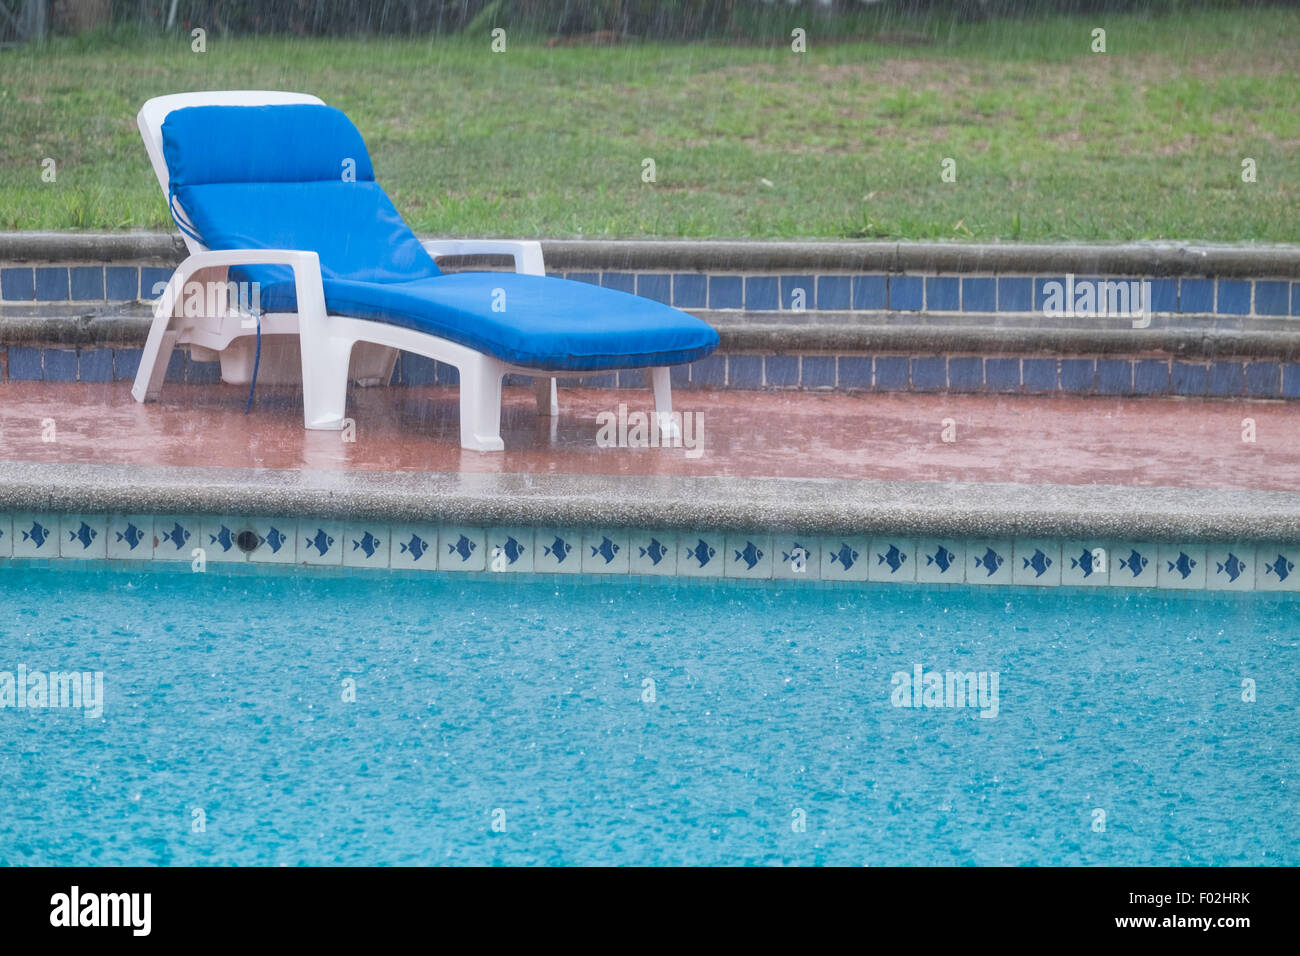 Heavy summer rain in residential backyard with swimming pool, Nayarit, Mexico - Stock Image